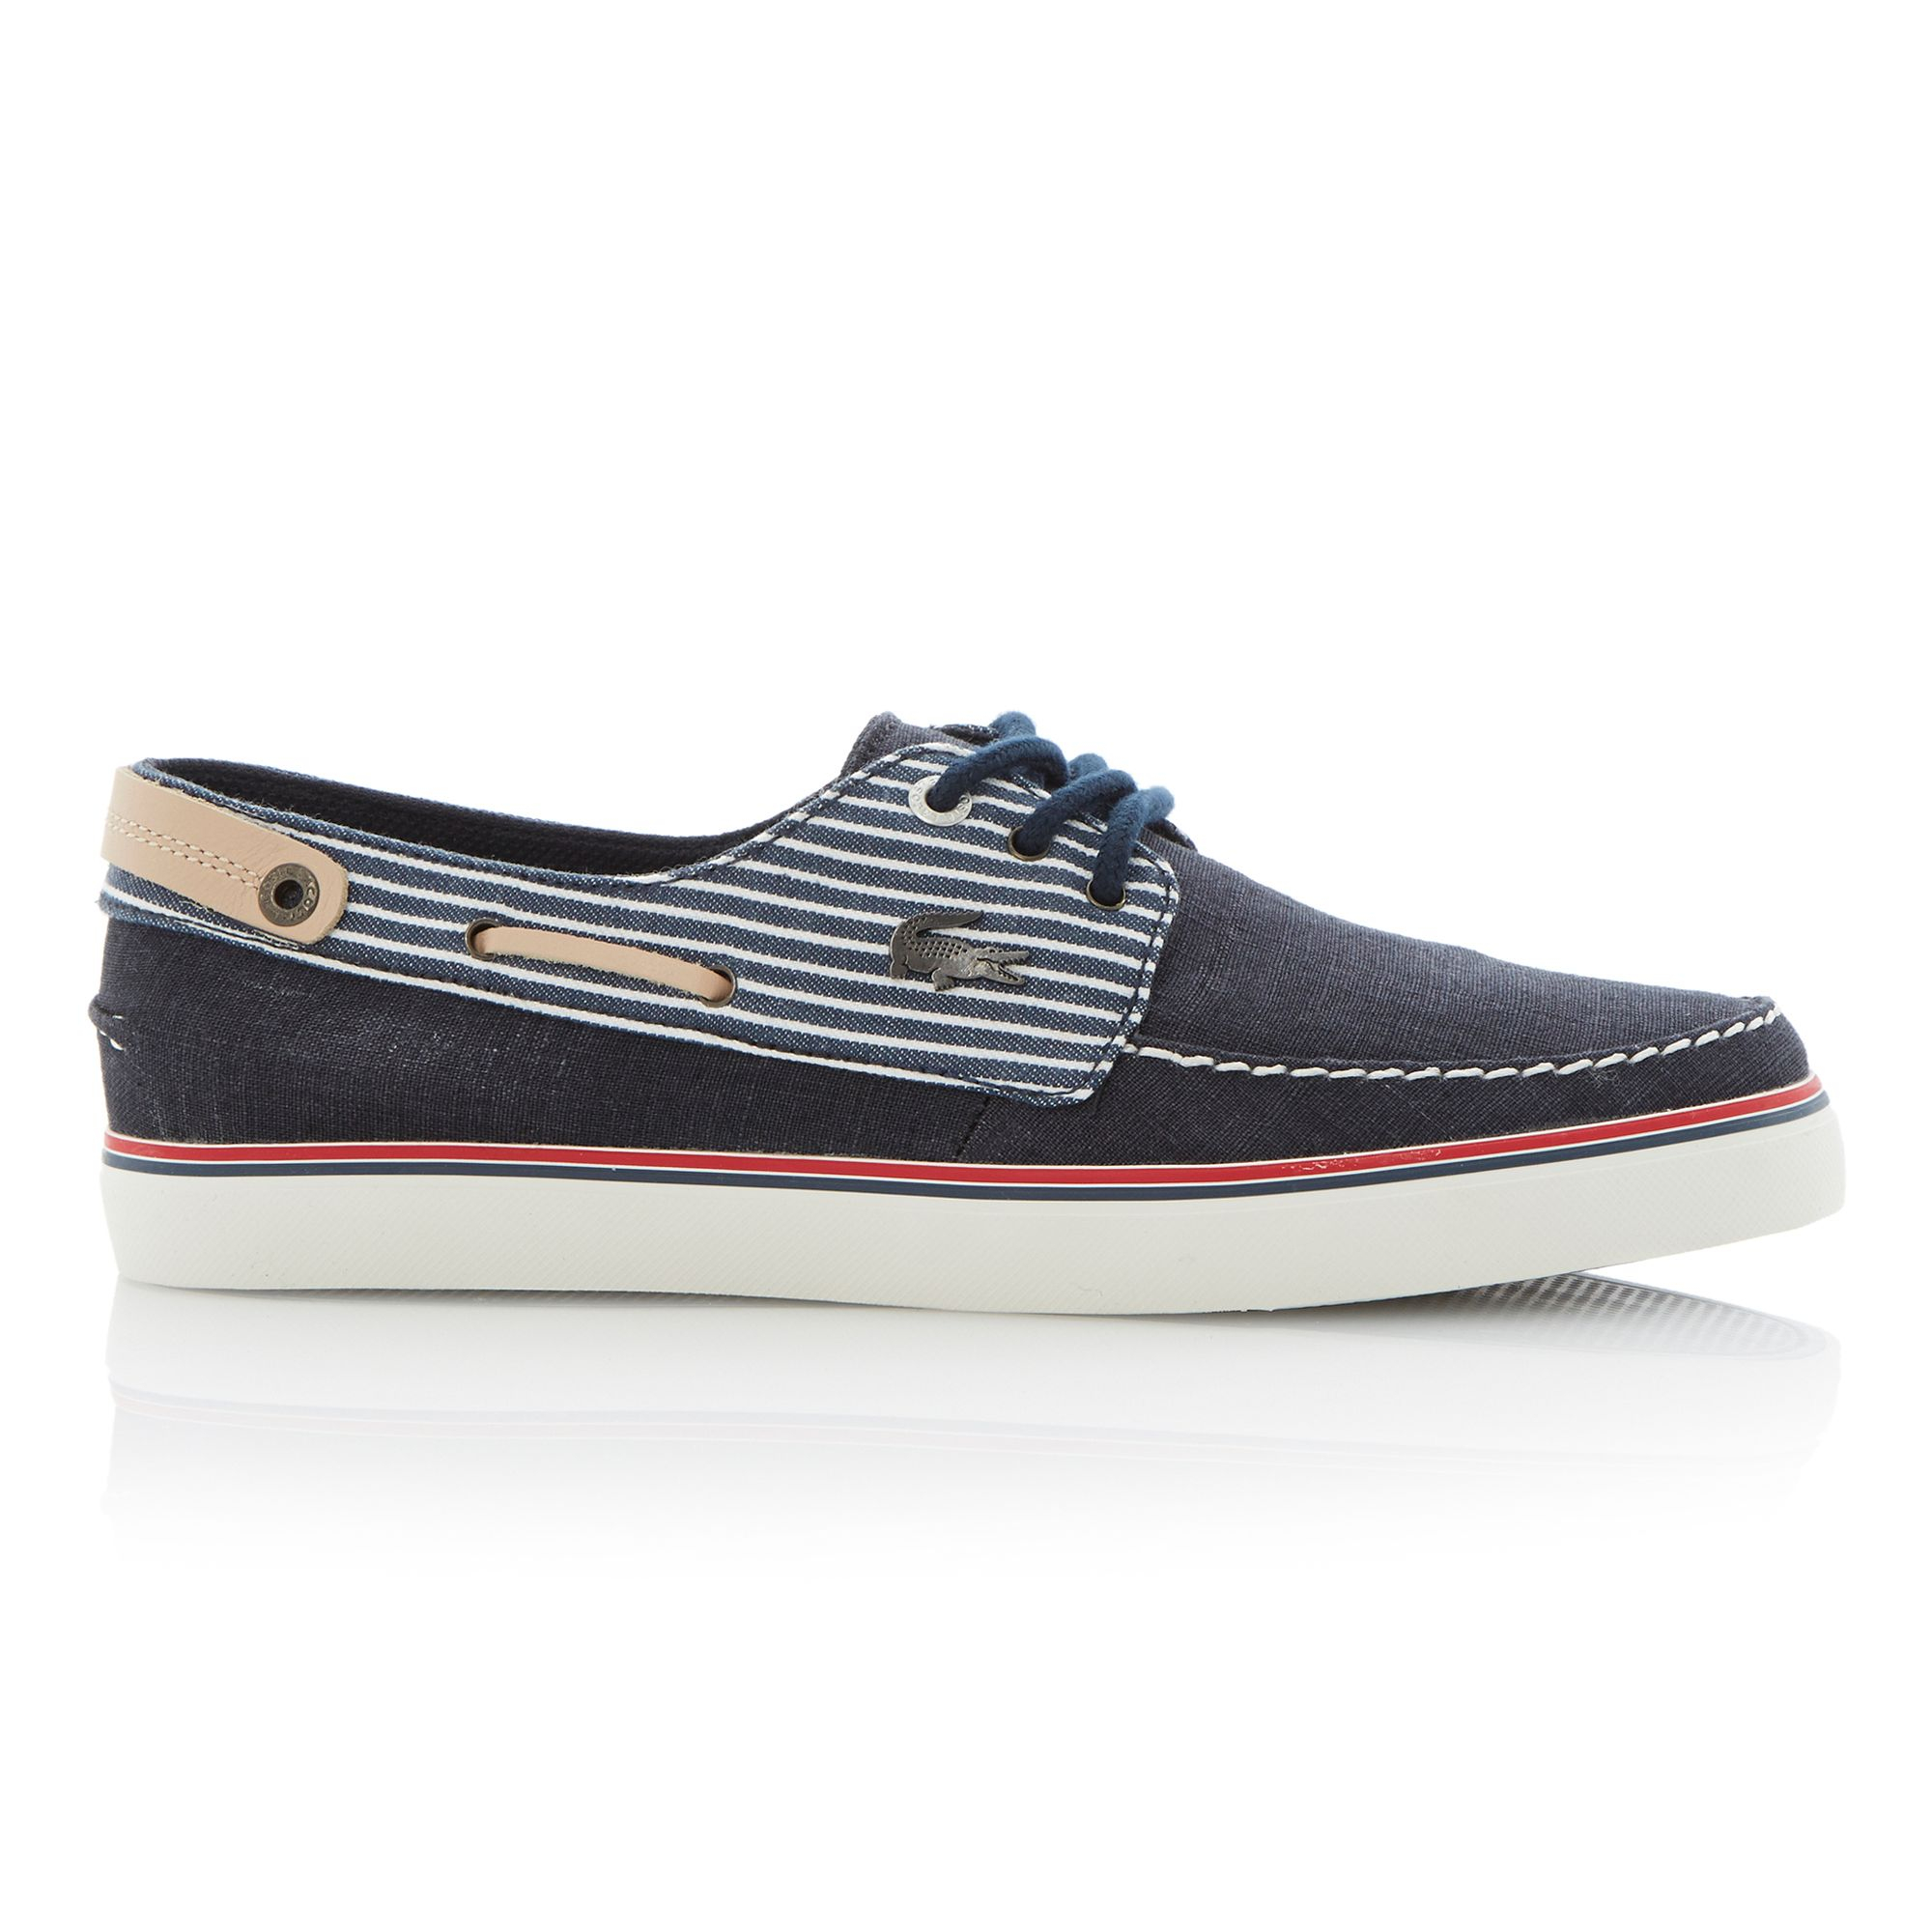 Lacoste Black Leather Boat Shoes